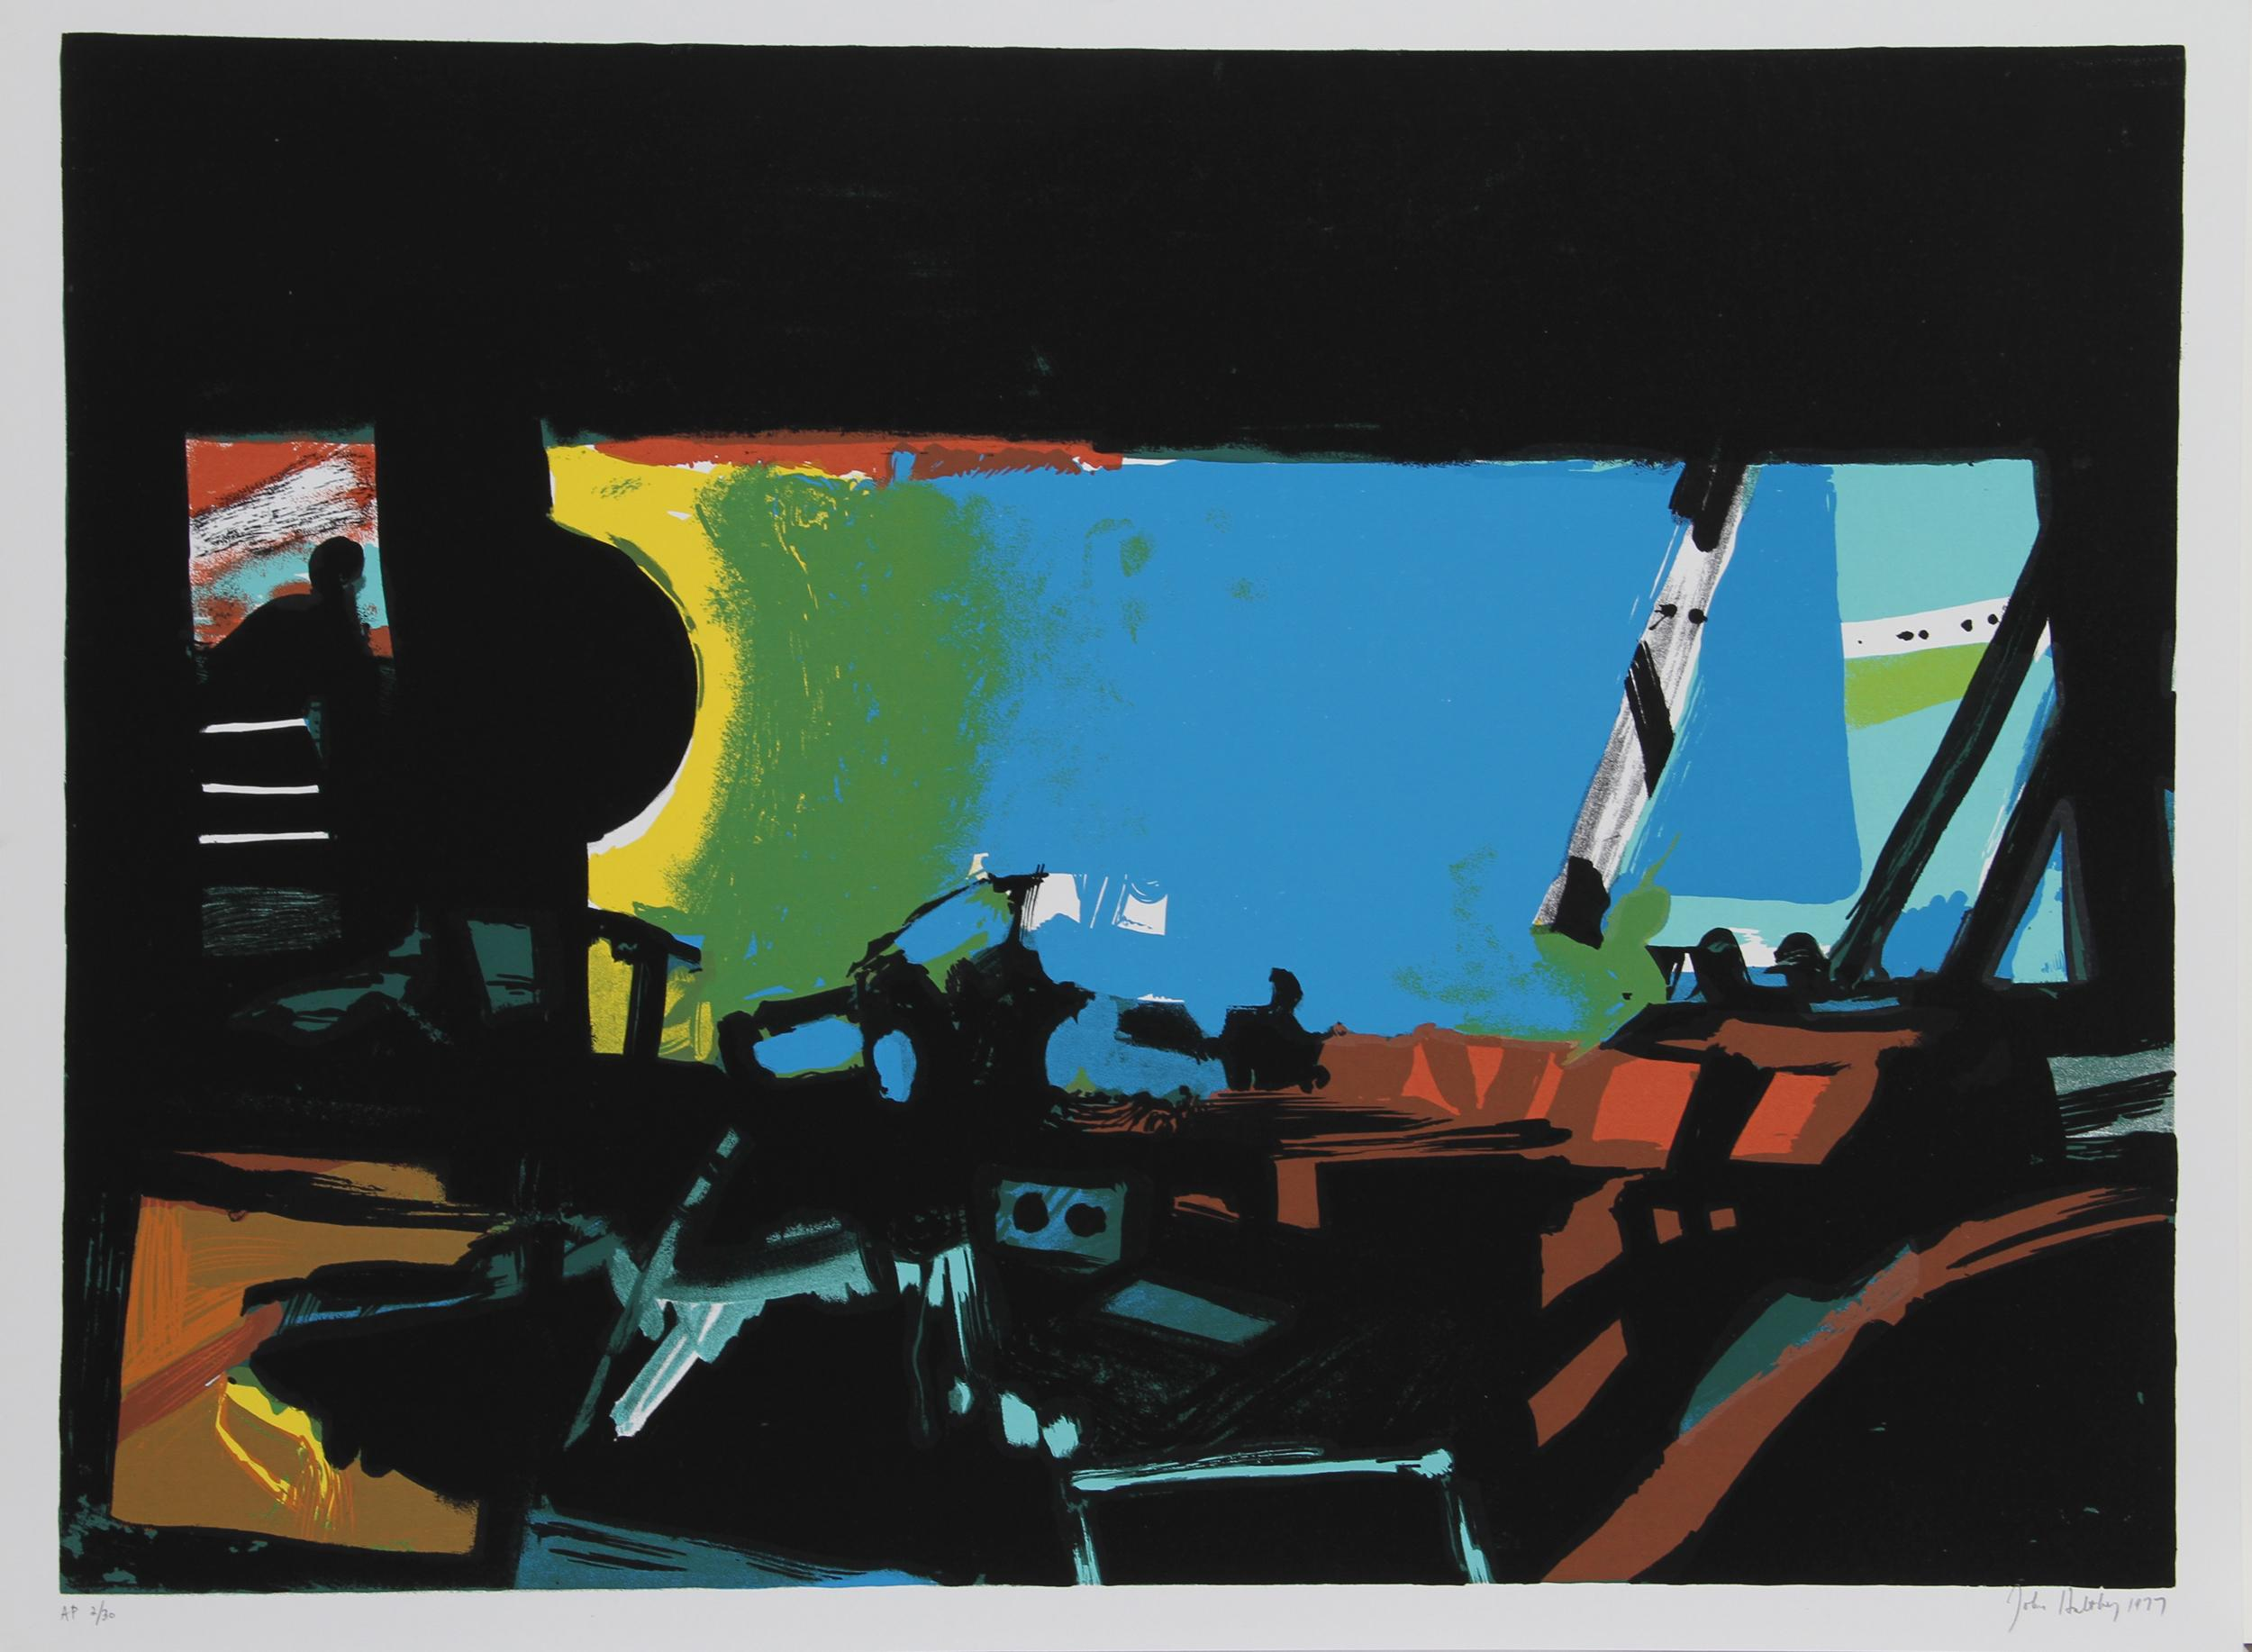 John Hultberg, Wide Window II, Silkscreen